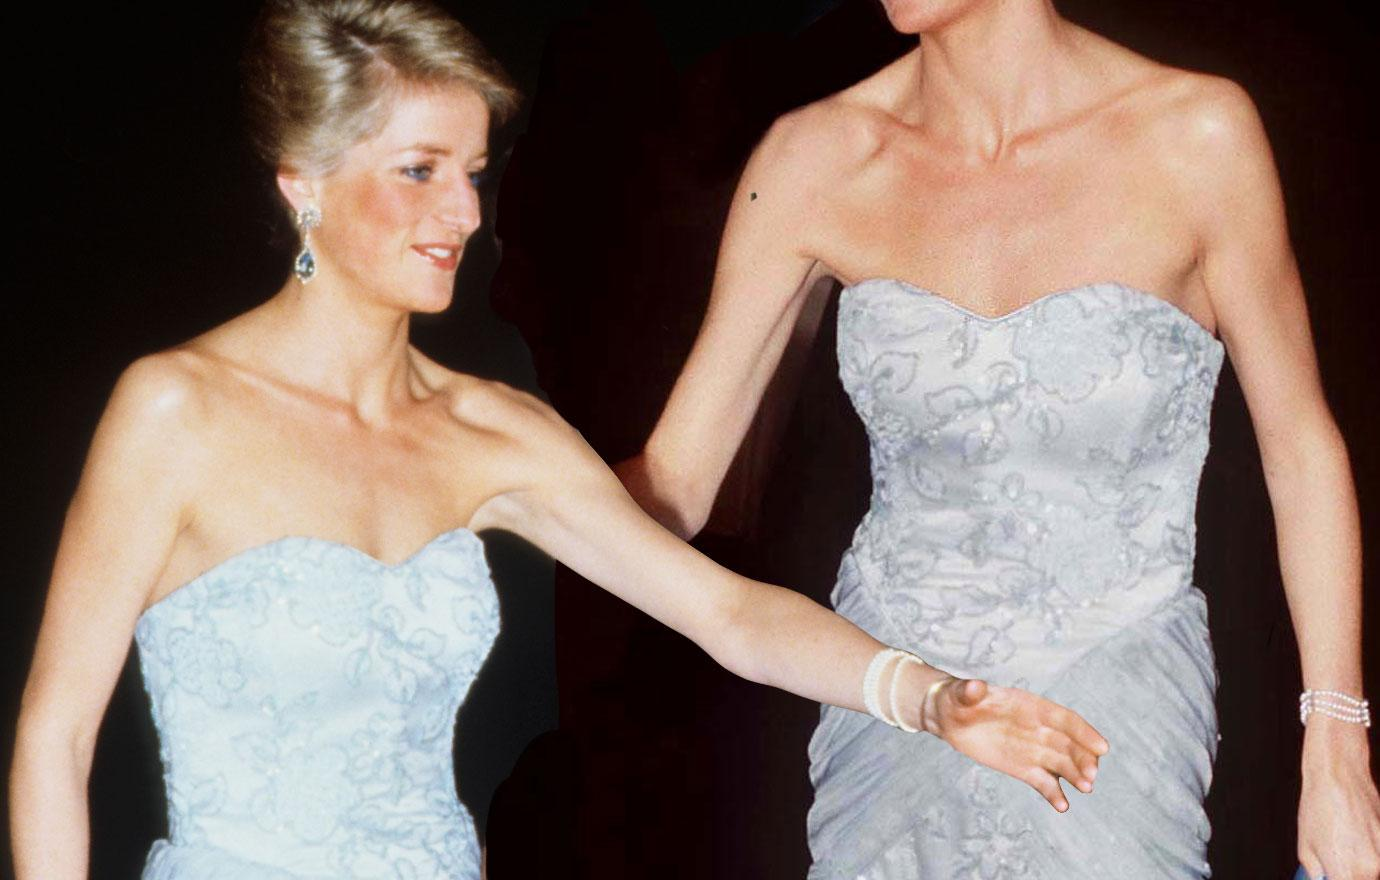 Princess Diana Wasted Away From Bulimia Friends Recall